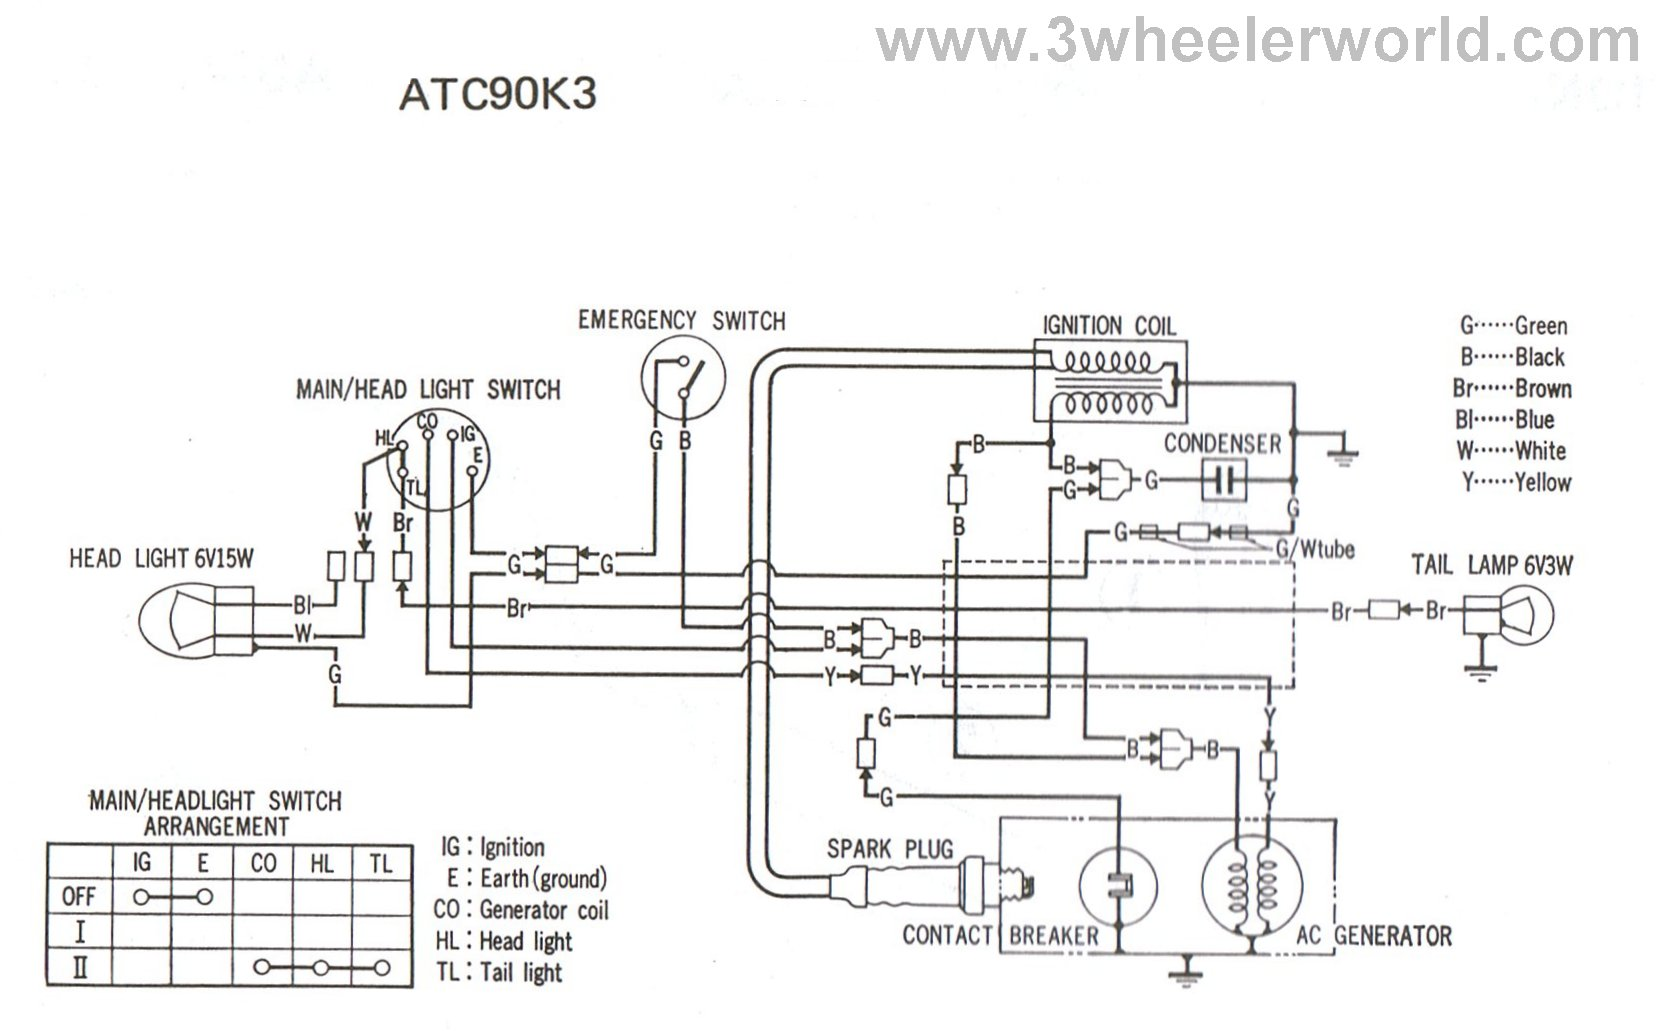 3 wheeler world tech help honda wiring diagrams rh 3wheelerworld com 2005 Arctic  Cat 400 Wiring Diagram Arctic Cat 500 Wiring Diagram 2000